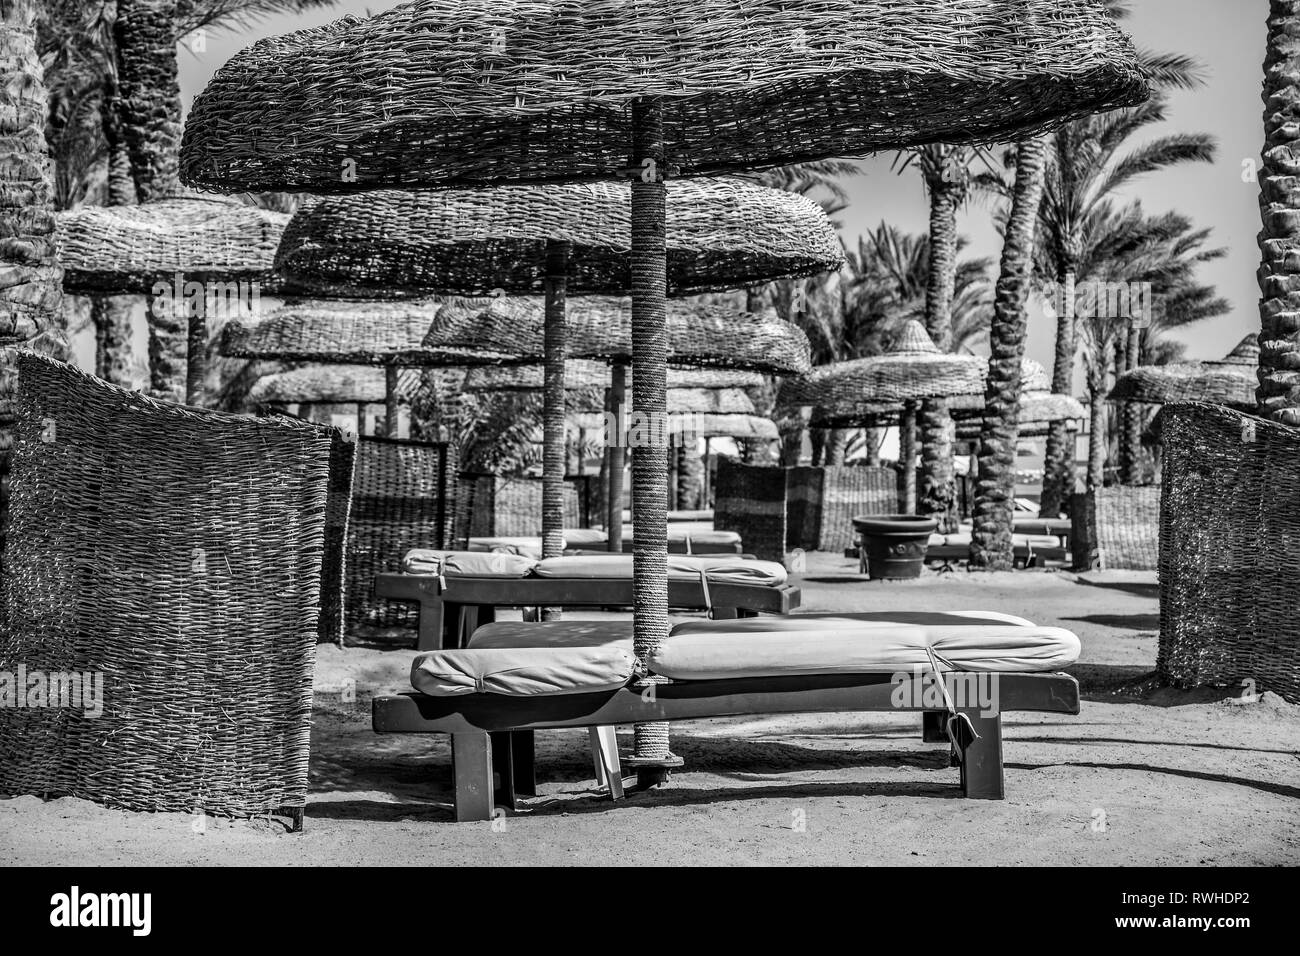 Empty beach deck chairs and umbrellas on a hot summer day in black and white - Stock Image